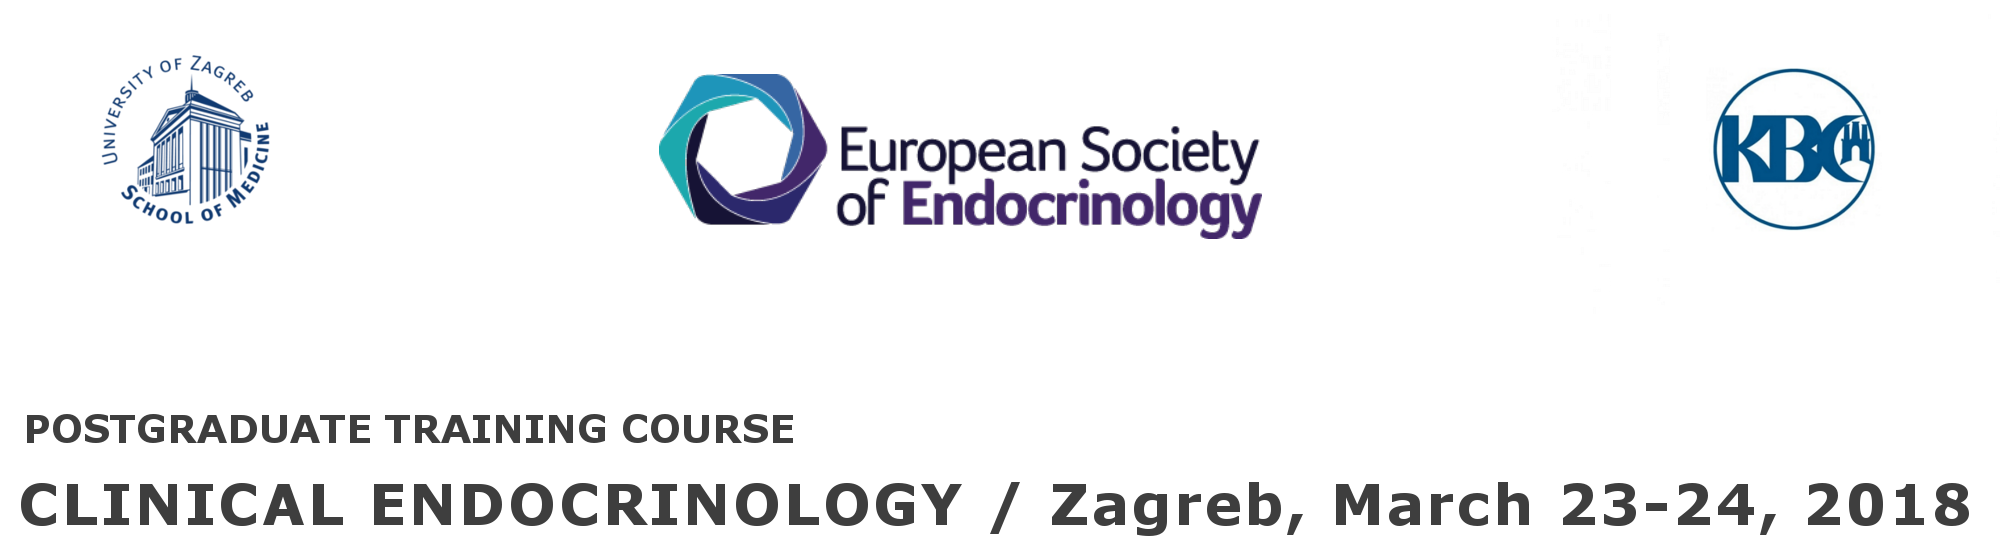 CLINICAL ENDOCRINOLOGY 2017